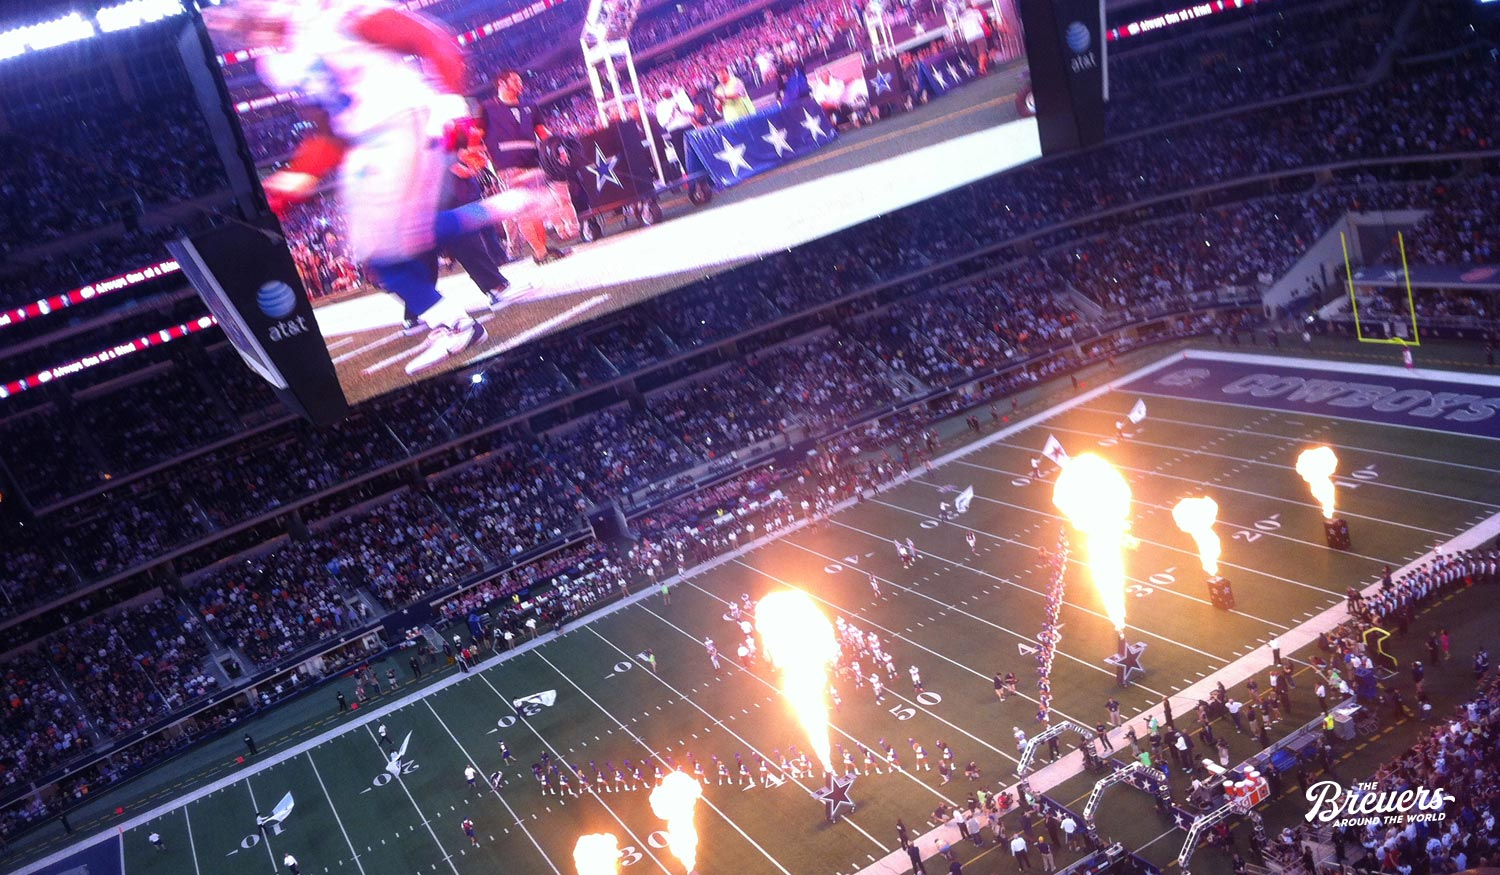 Cheerleader der Dallas Cowboys zu Spielbeginn